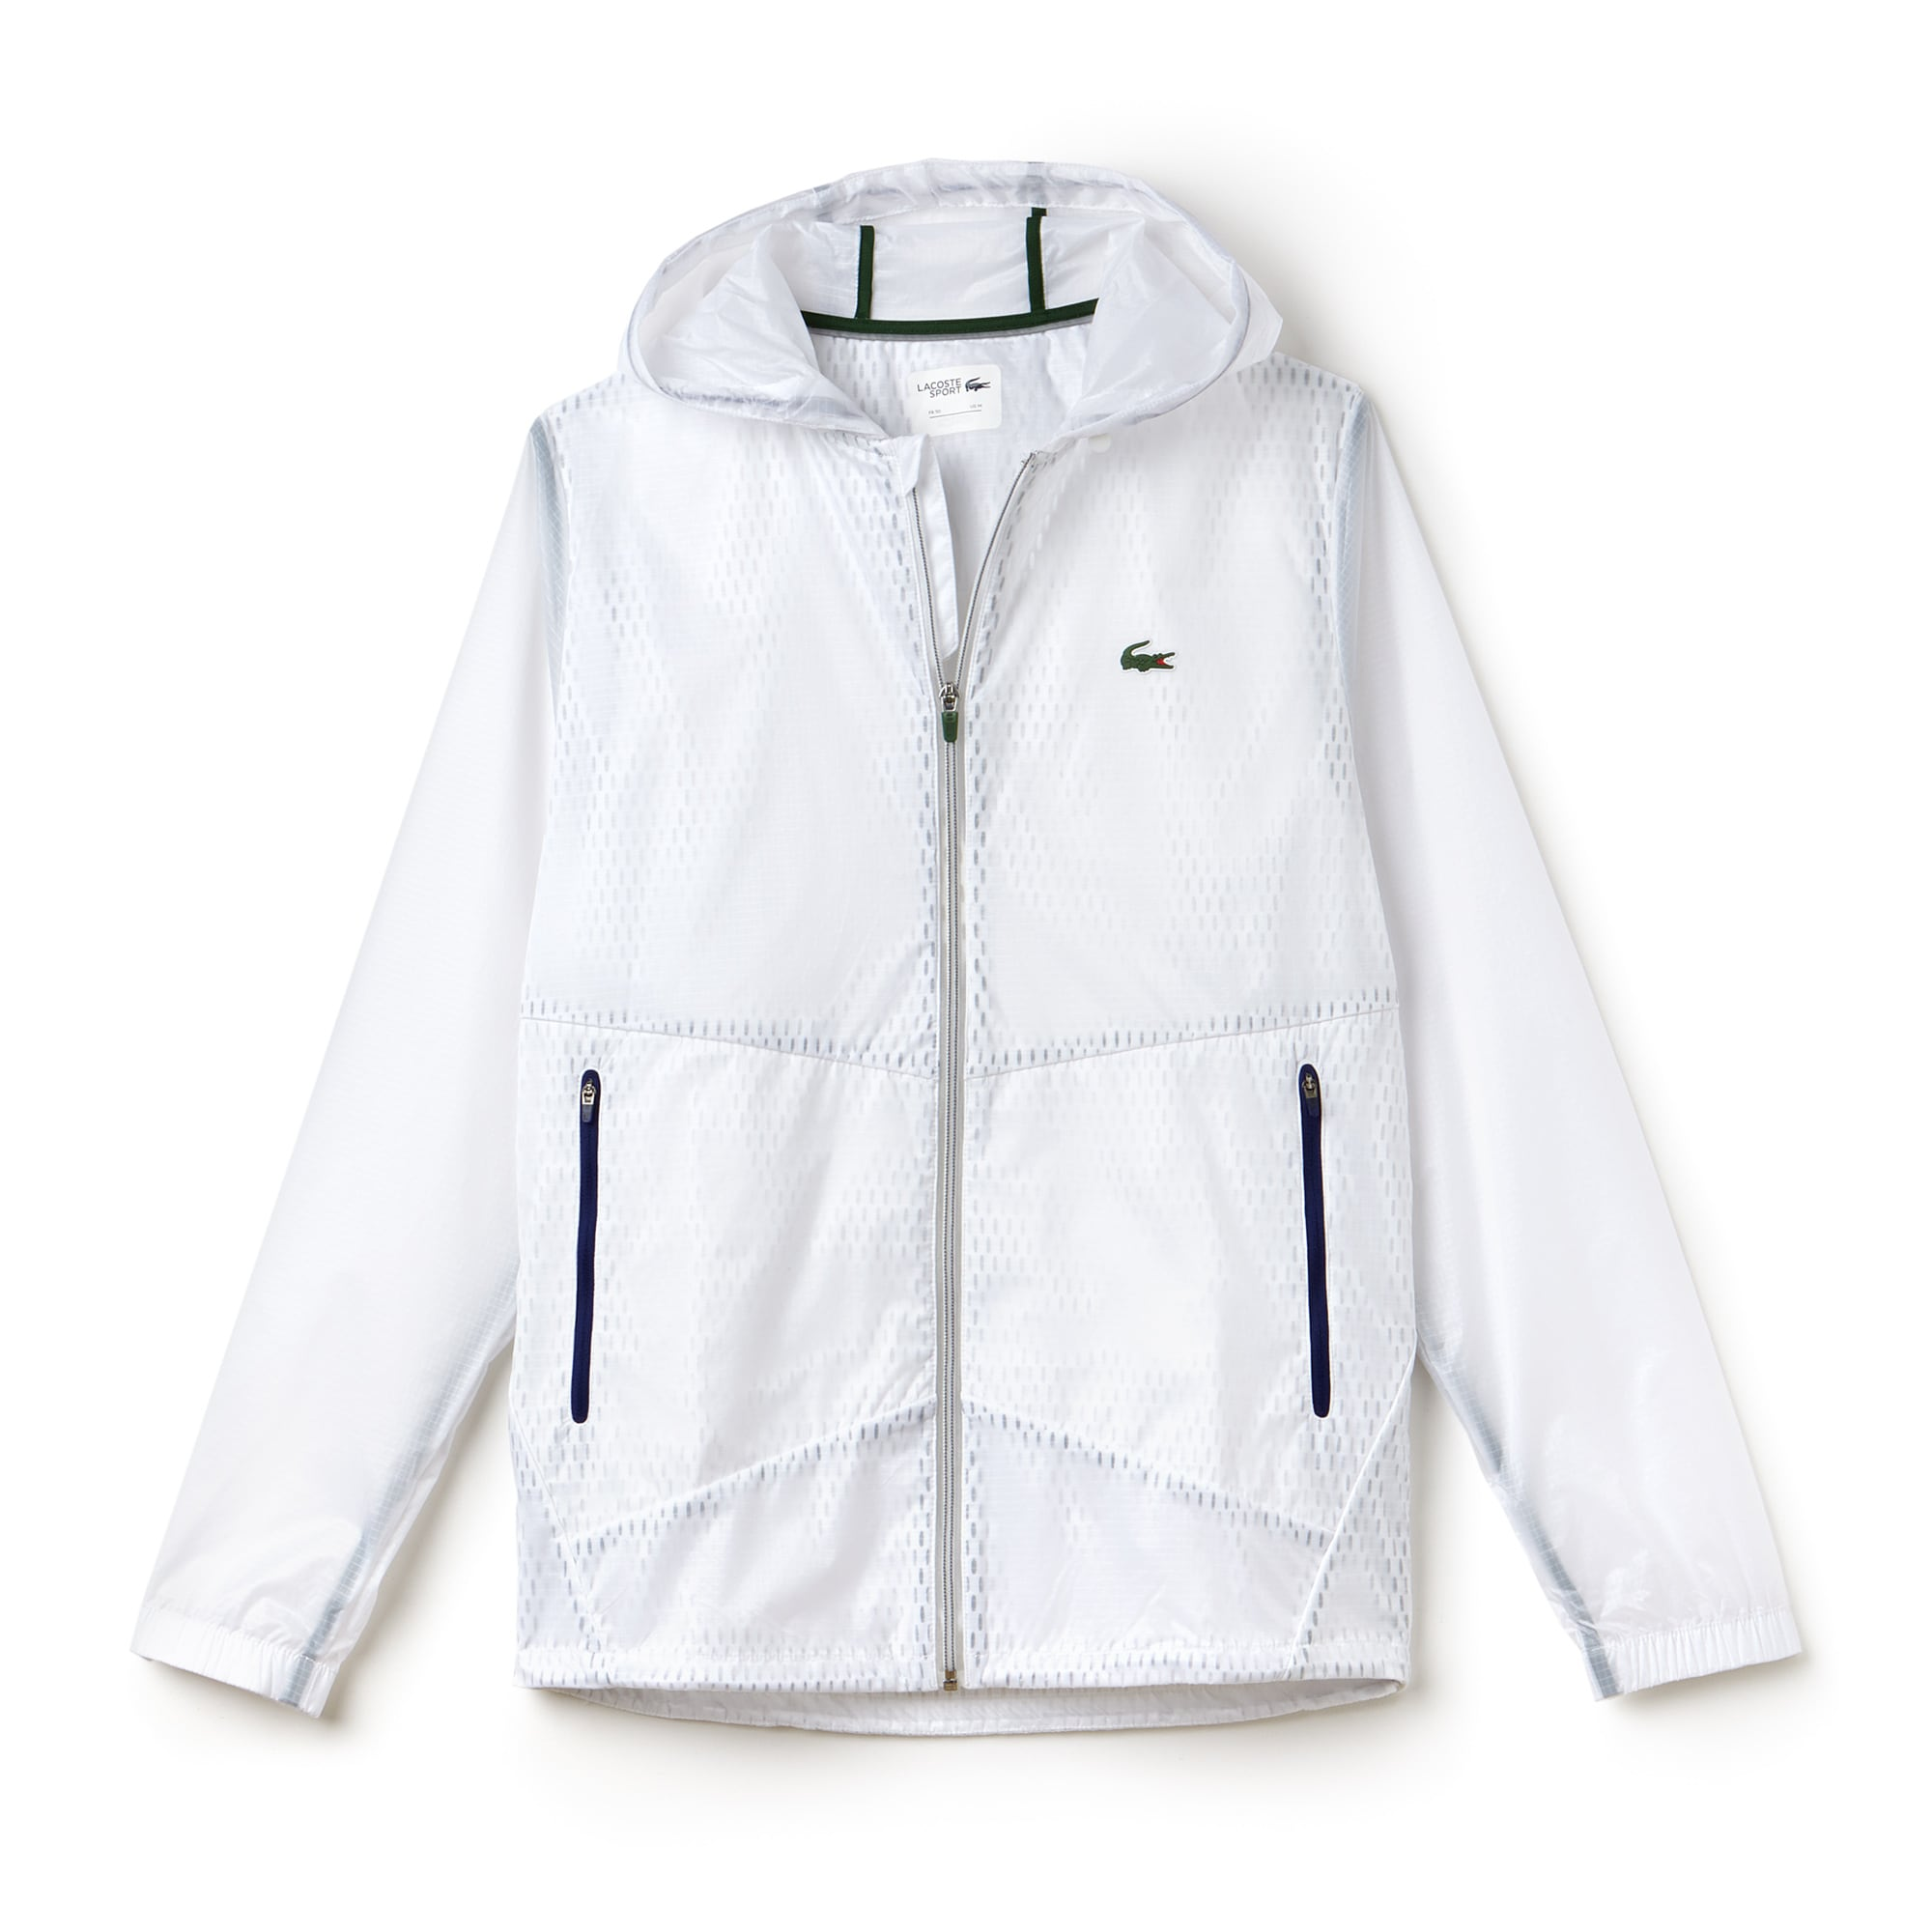 Men's Jacket Lacoste x Novak Djokovic - Exclusive Edition